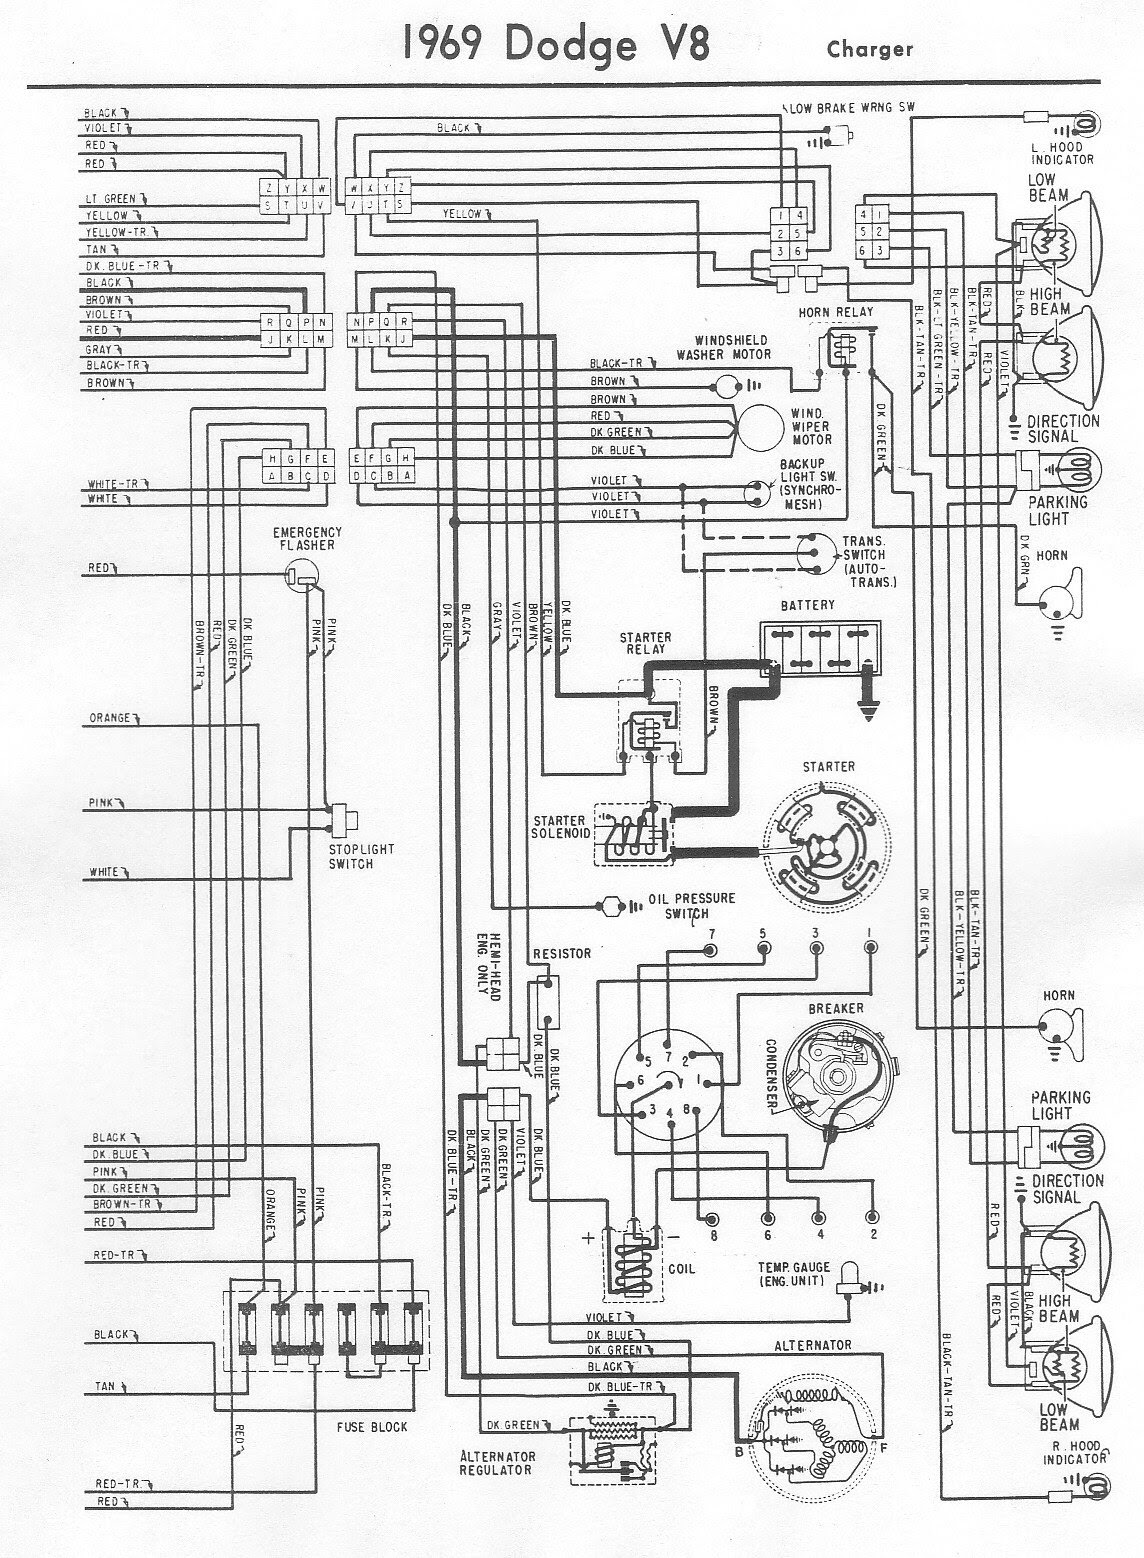 1970 Dodge Challenger Wiring Diagram